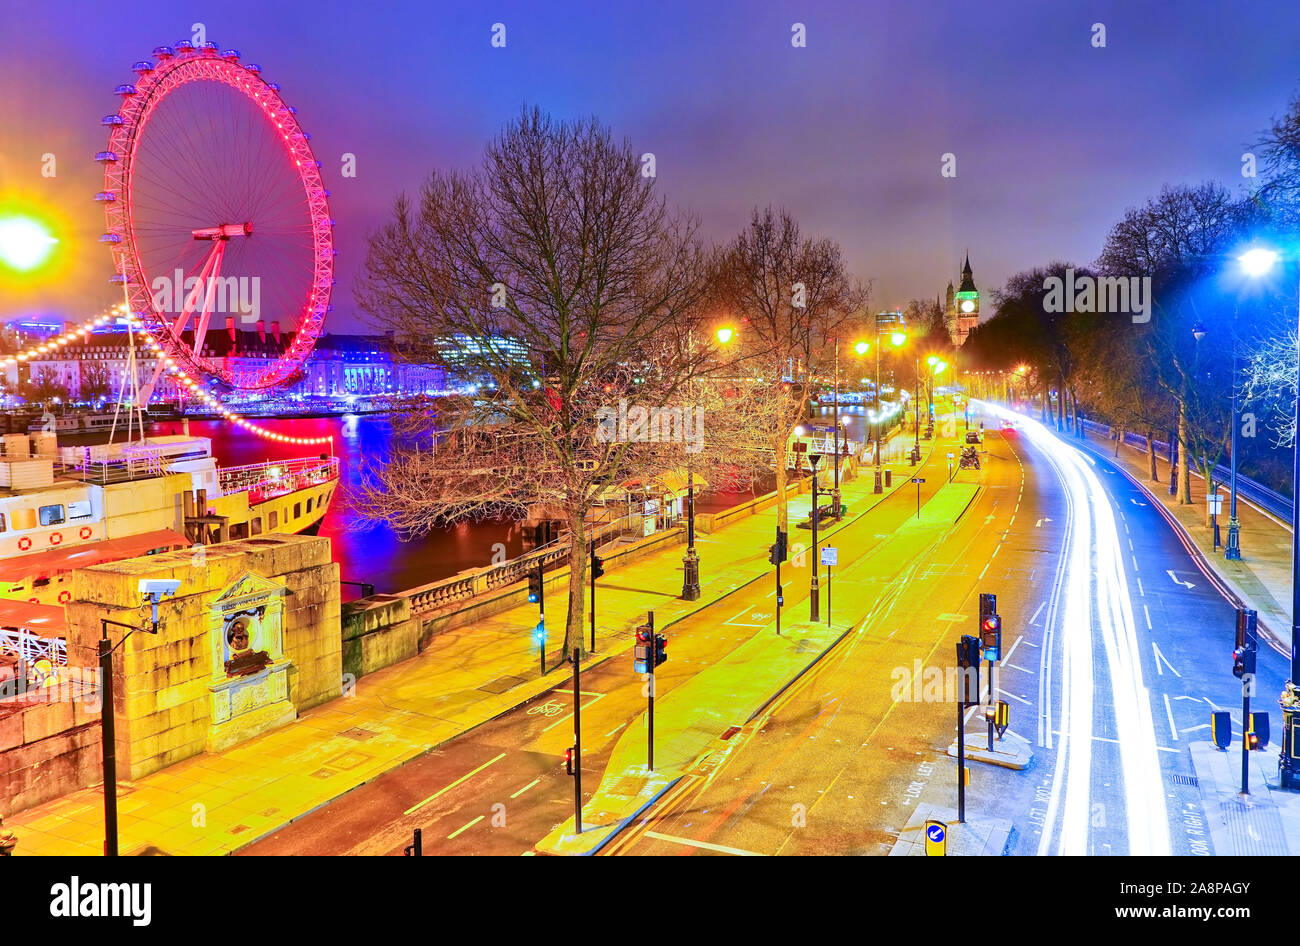 View of the Houses of Parliament with cars passing through on the street in London at night. Stock Photo